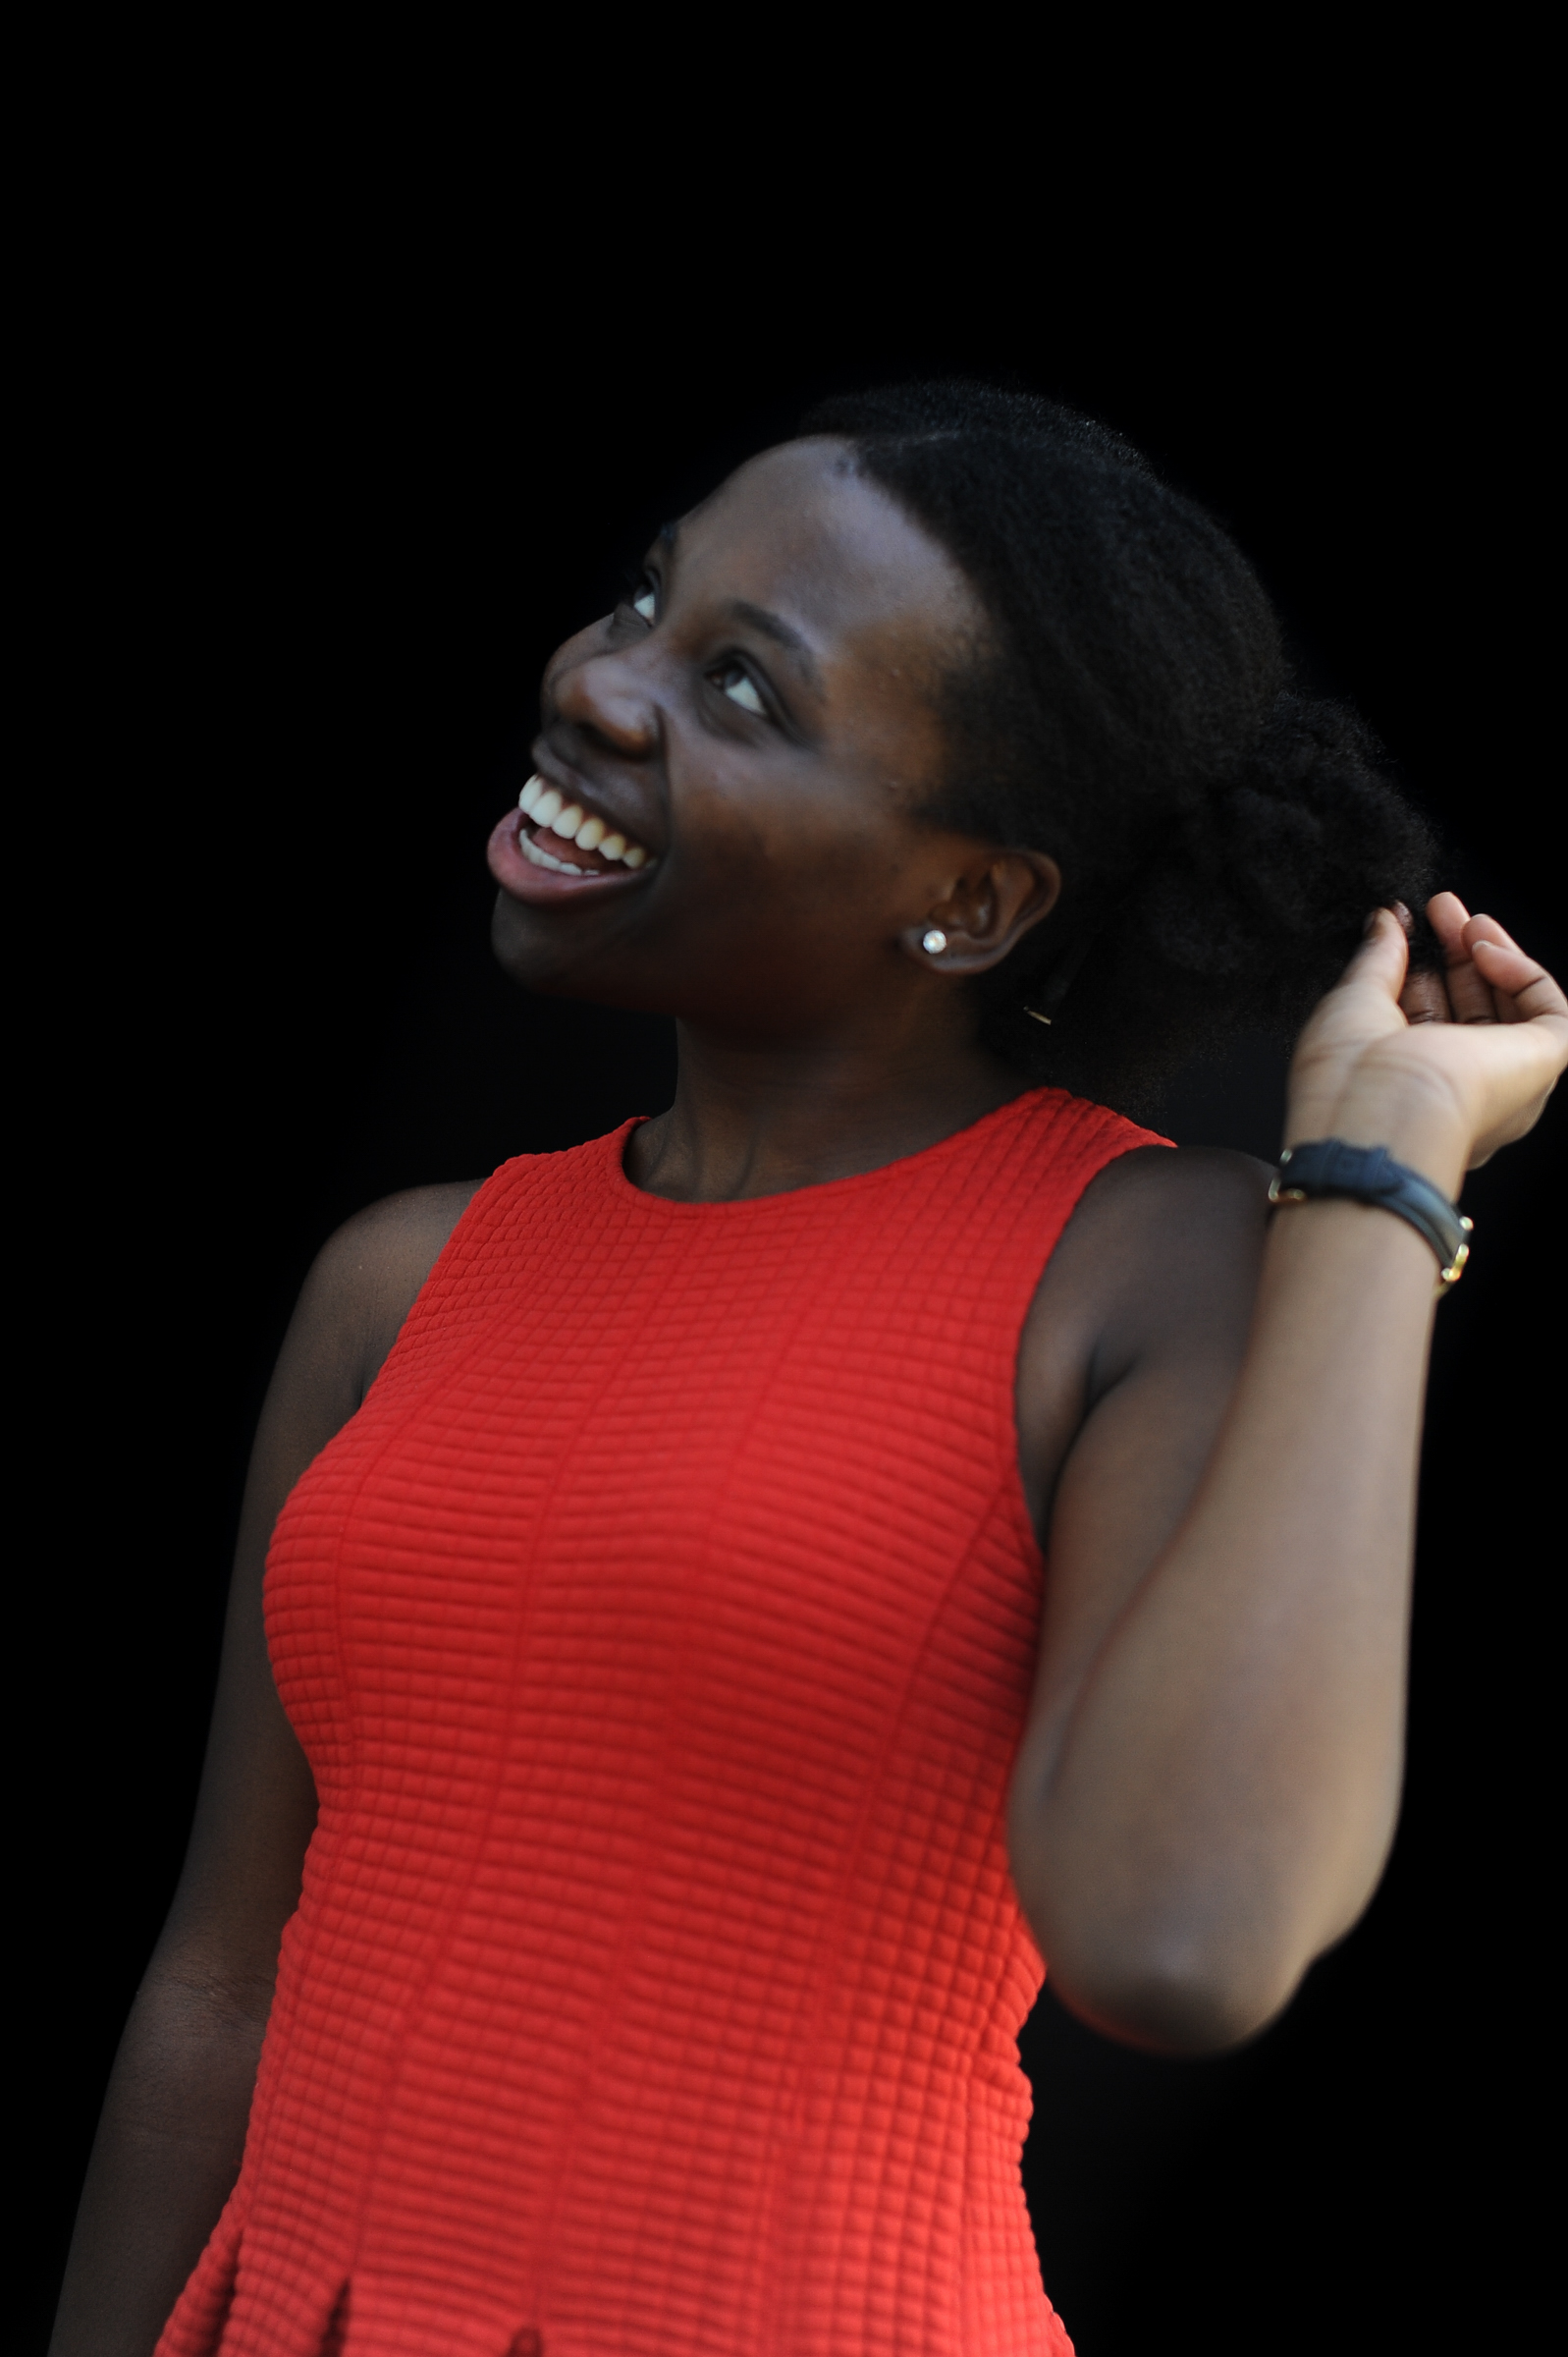 Name: Mo AyodeleClass Year: 2018Major: AEMHometown: Charlotte, NCActivities: Art Beyond Cornell, Delta Sigma Pi, Senior Class CampaignIf you could make up a major, what would it be?: Online ShoppingWhy would you be on the front page of The Cornell Daily Sun?: Crashing a trustee dinner.Blurb: Black girl magic.  Get used to it.